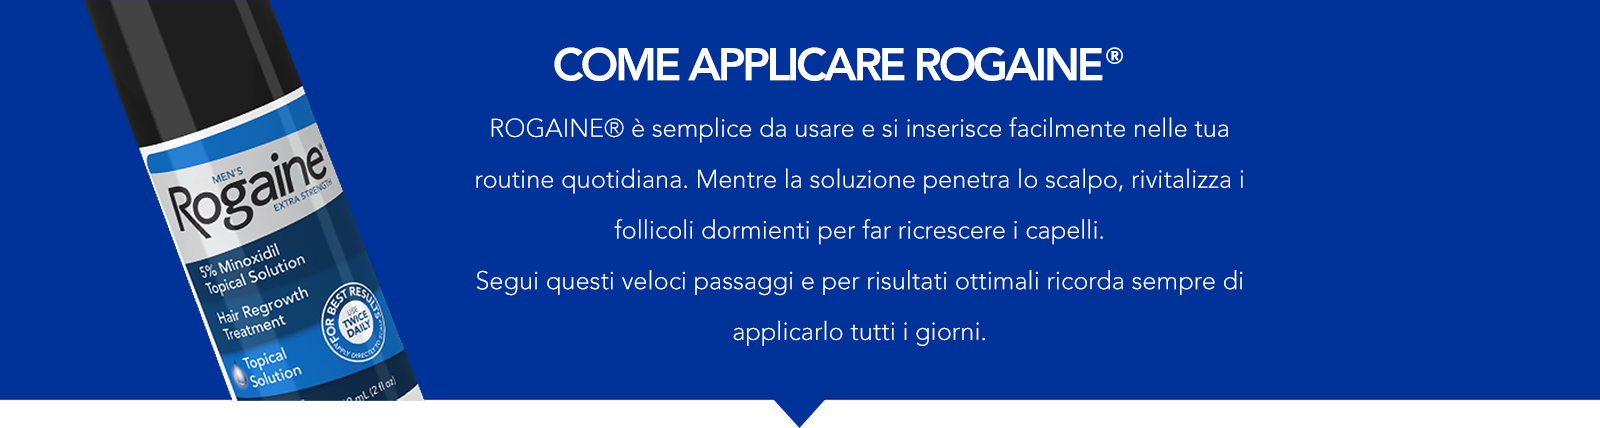 come applicare rogaine